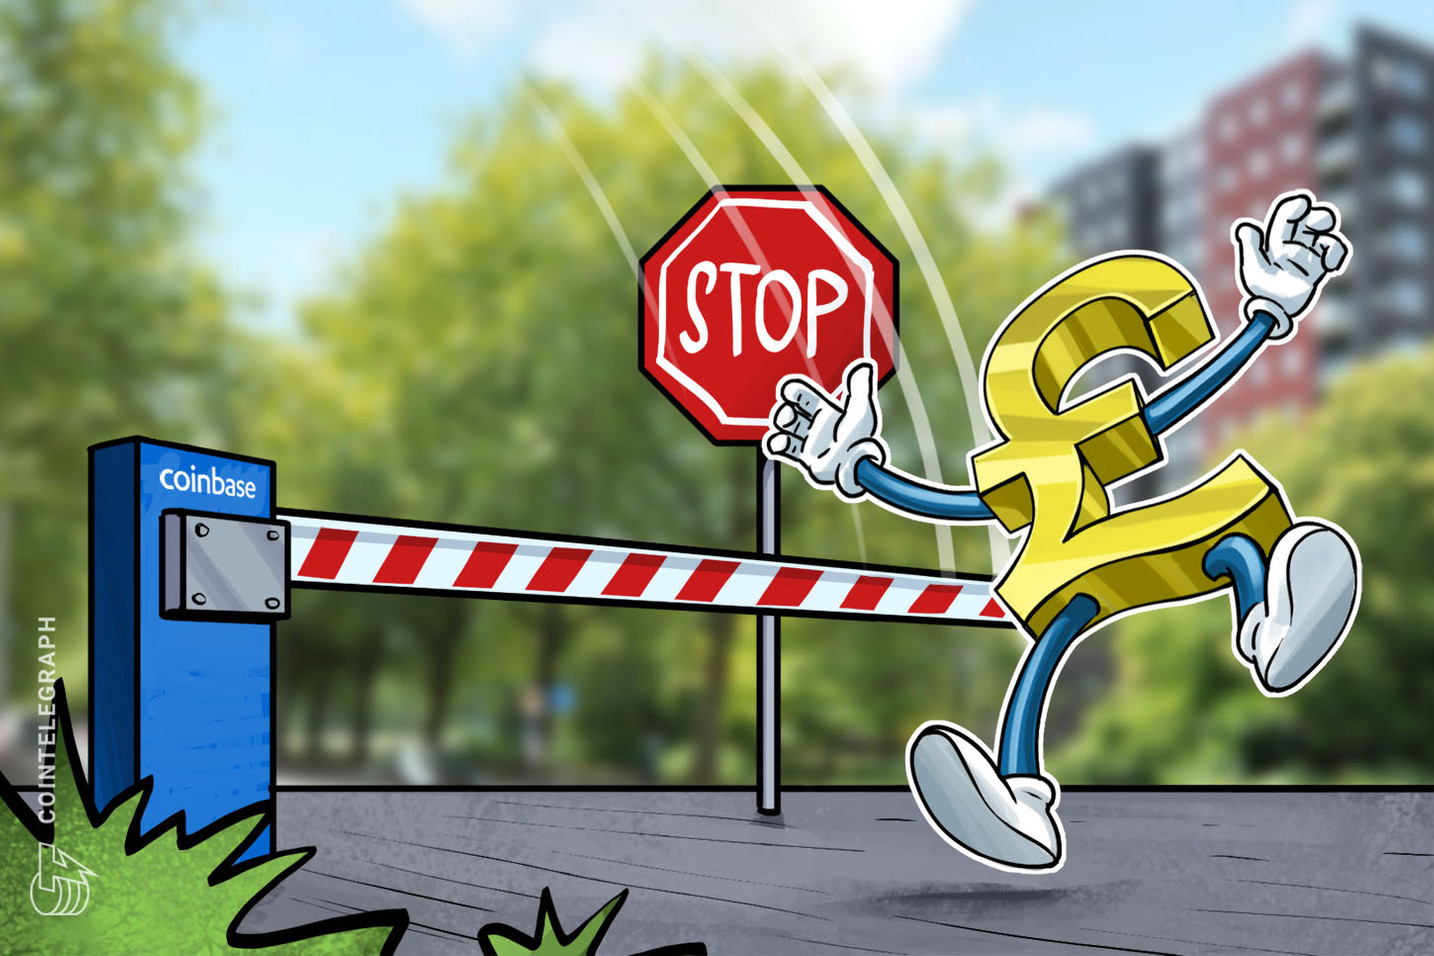 Report: Coinbase Deposits for UK Users Now Take 10 Days, Must Be Over £1,000